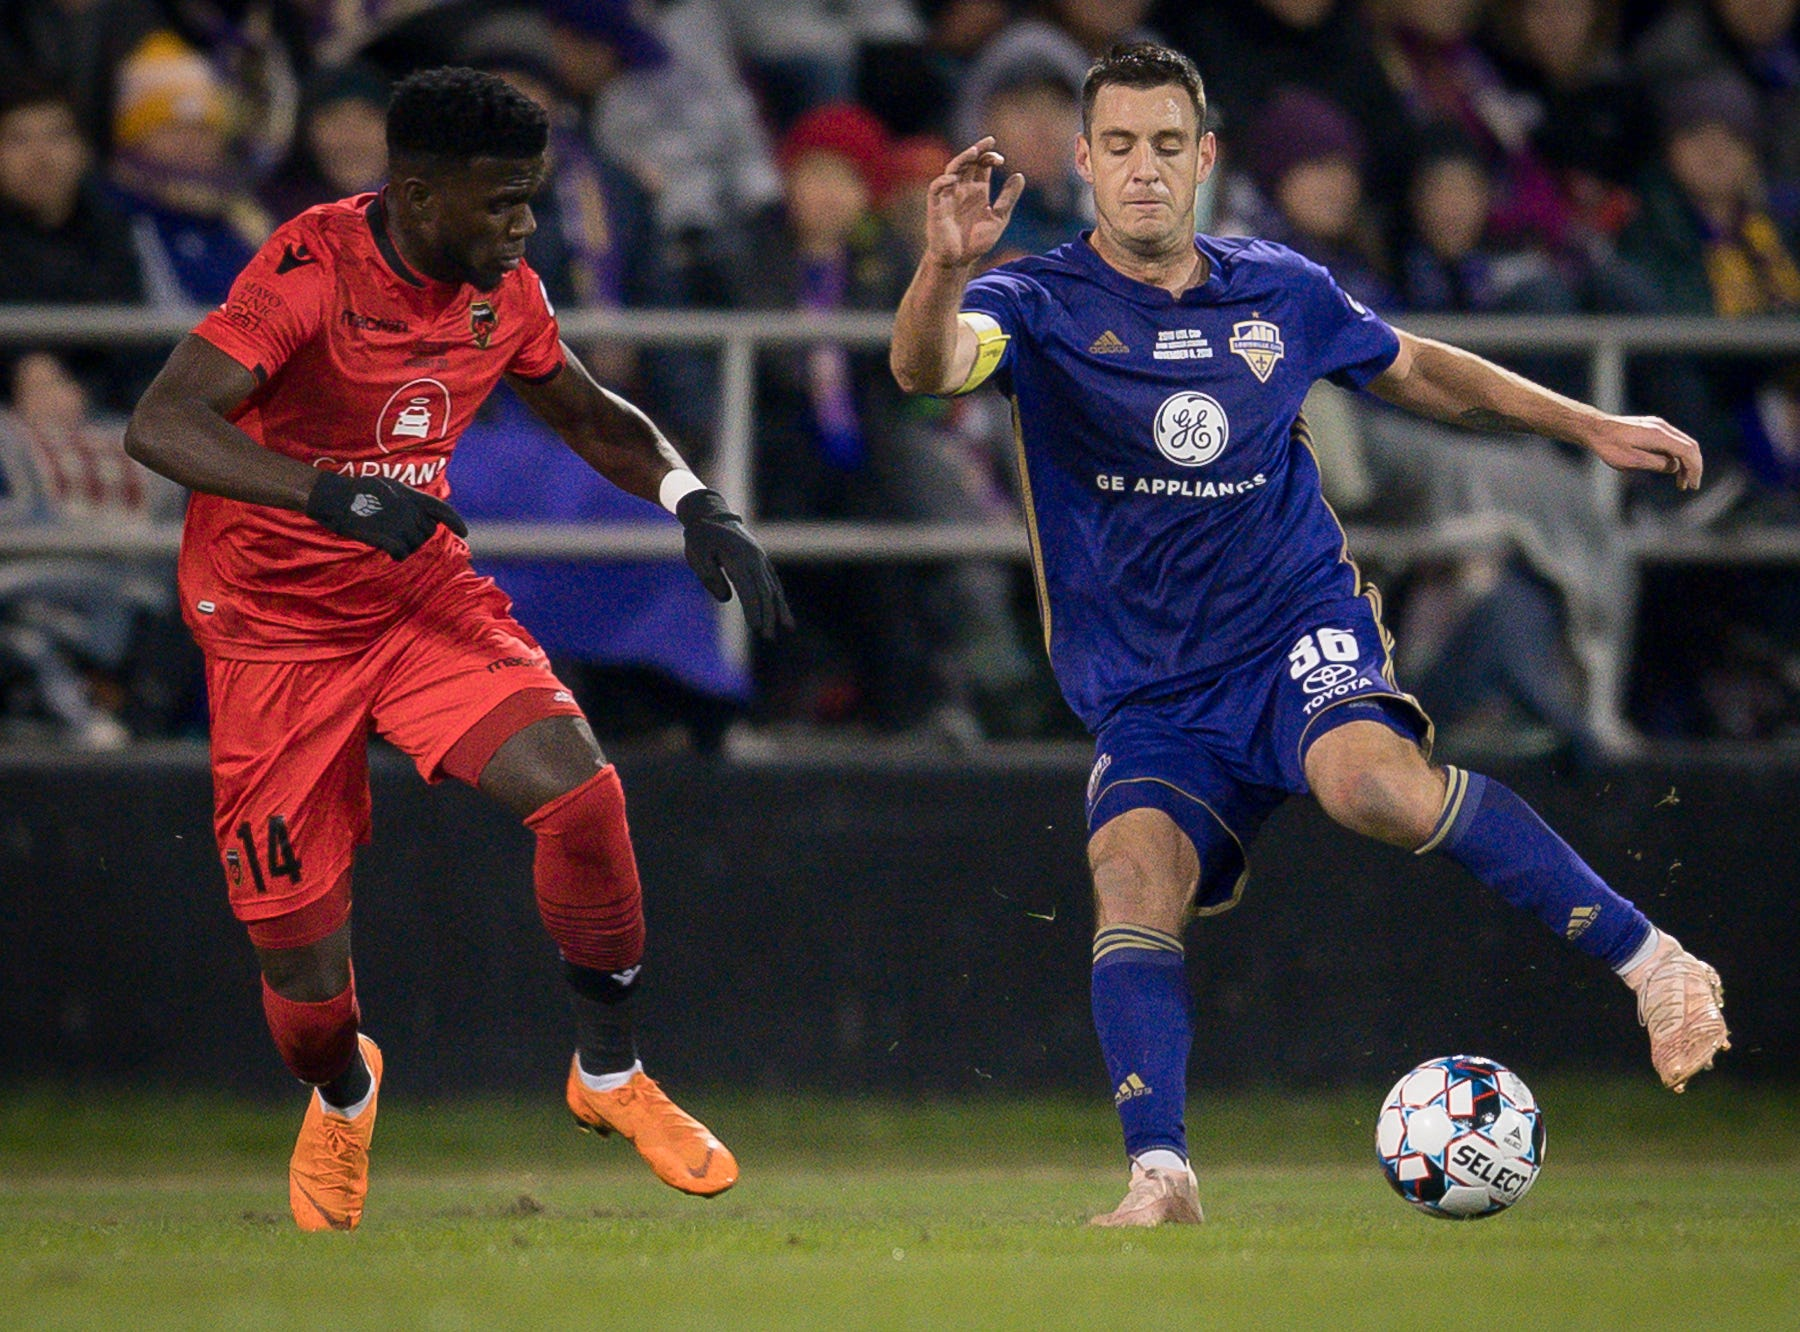 Louisville City FC midfielder Paolo DelPiccolo (36) plays against Phoenix Rising FC forward Jason Johnson (14) during the first half of the USL Cup final played at Lynn Stadium on the campus of the University of Louisville, Louisville, Ky., Thursday, Nov., 8, 2018. (PHOTO Bryan Woolston)